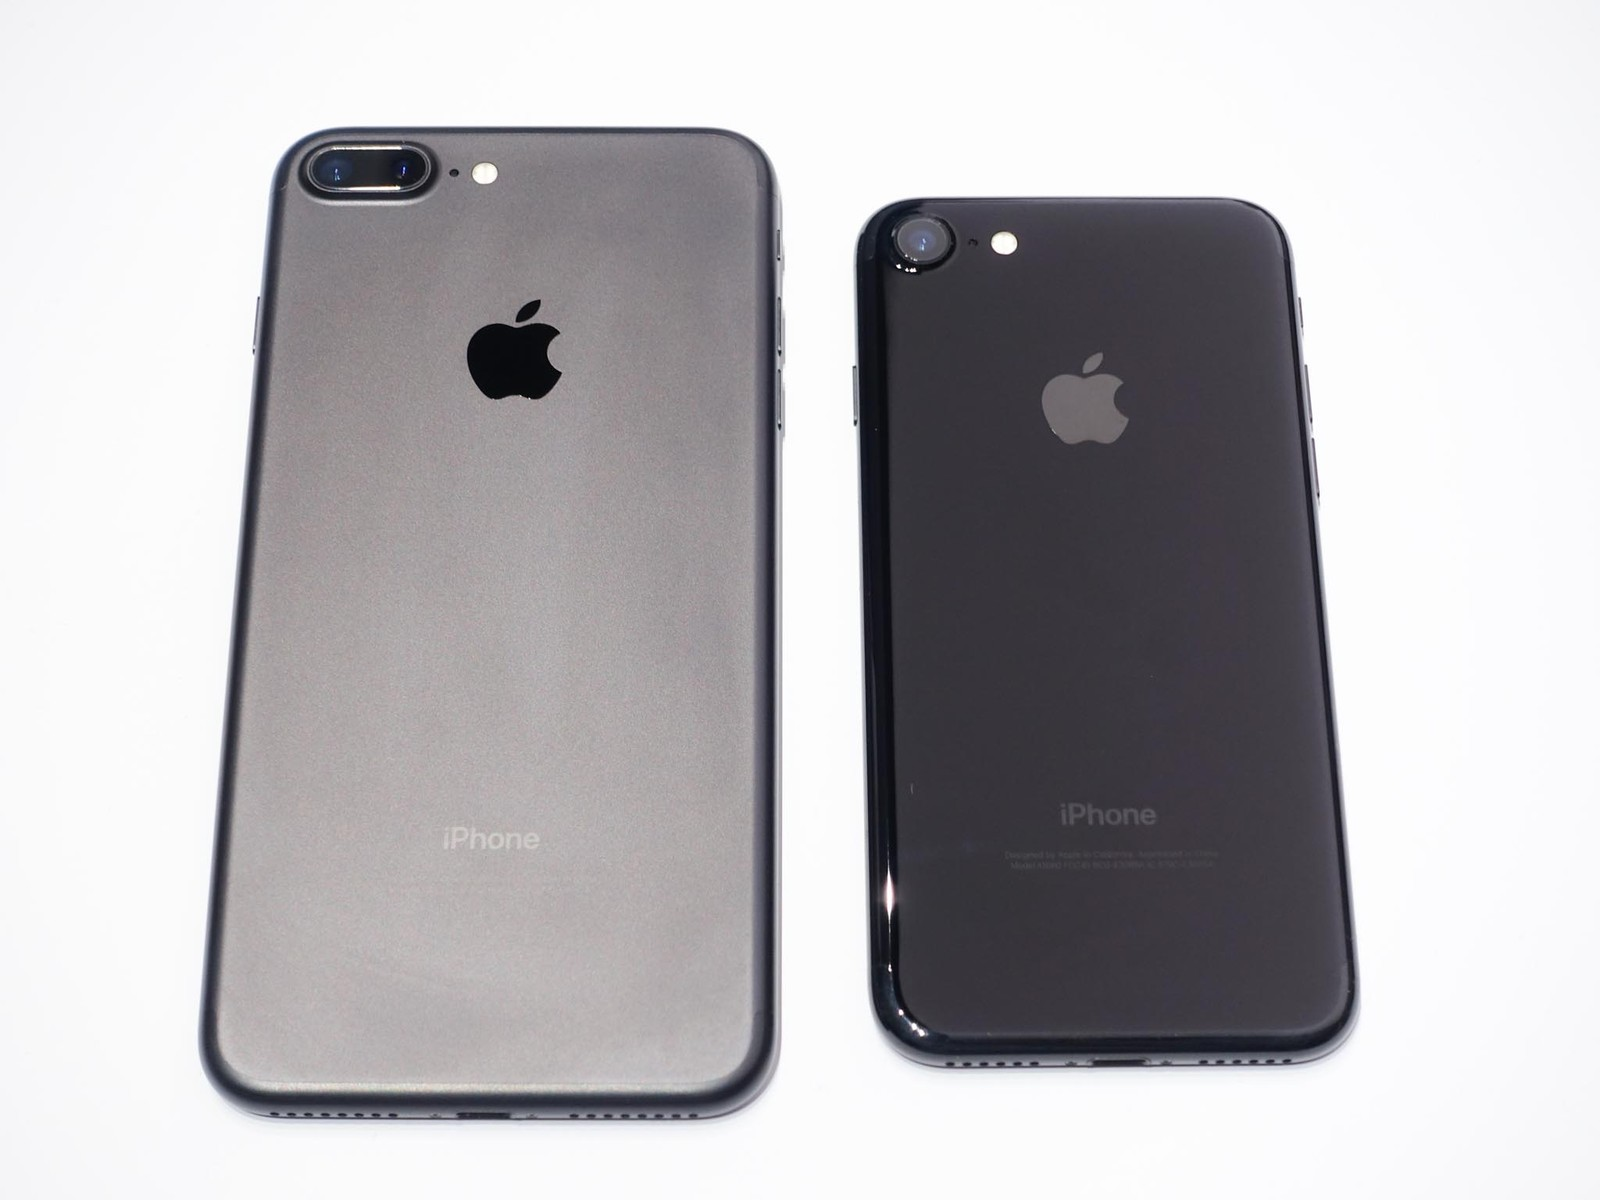 iPhone 7 or iPhone 7 Plus size